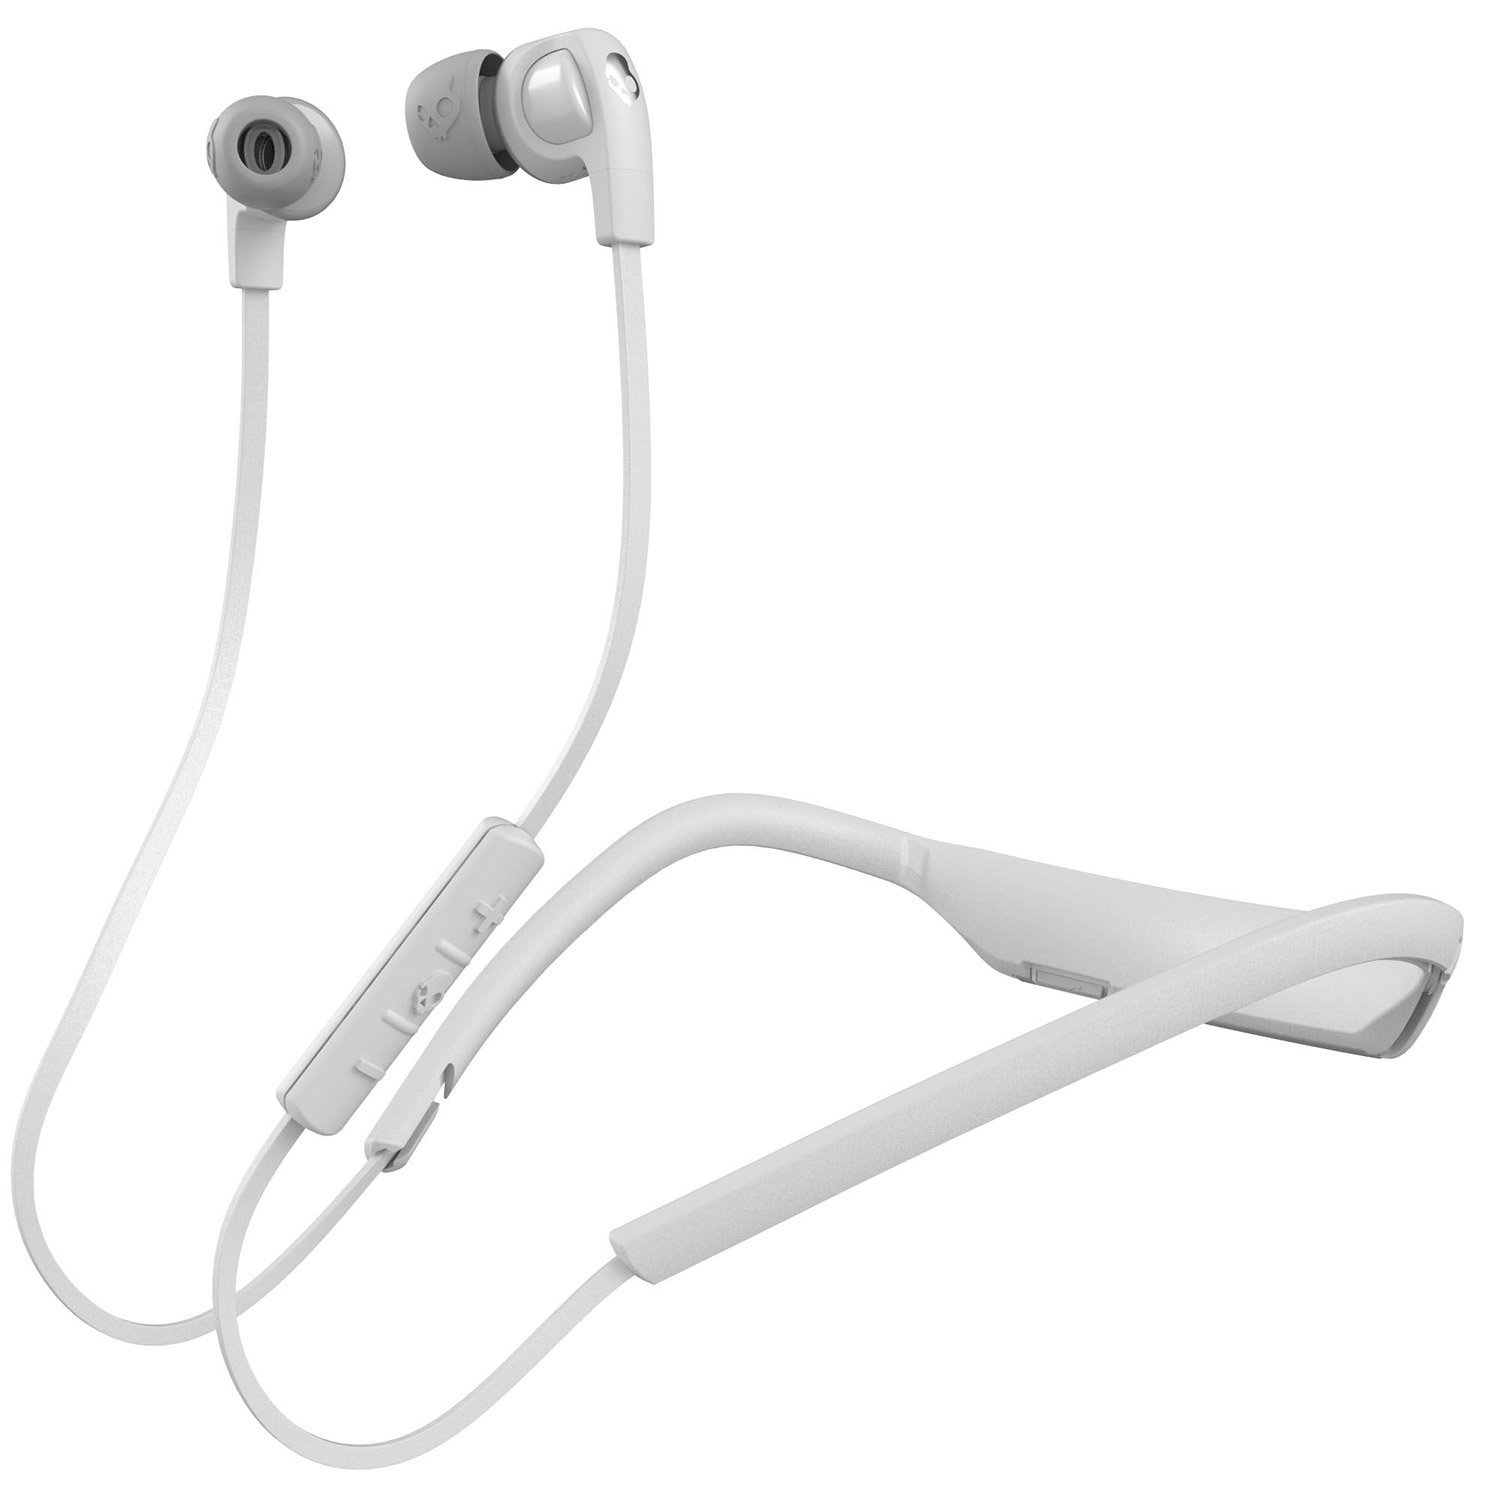 Skullcandy-Smokin-039-Buds-2-in-Ear-Bluetooth-Wireless-Earbuds-with-Microphone-New thumbnail 33